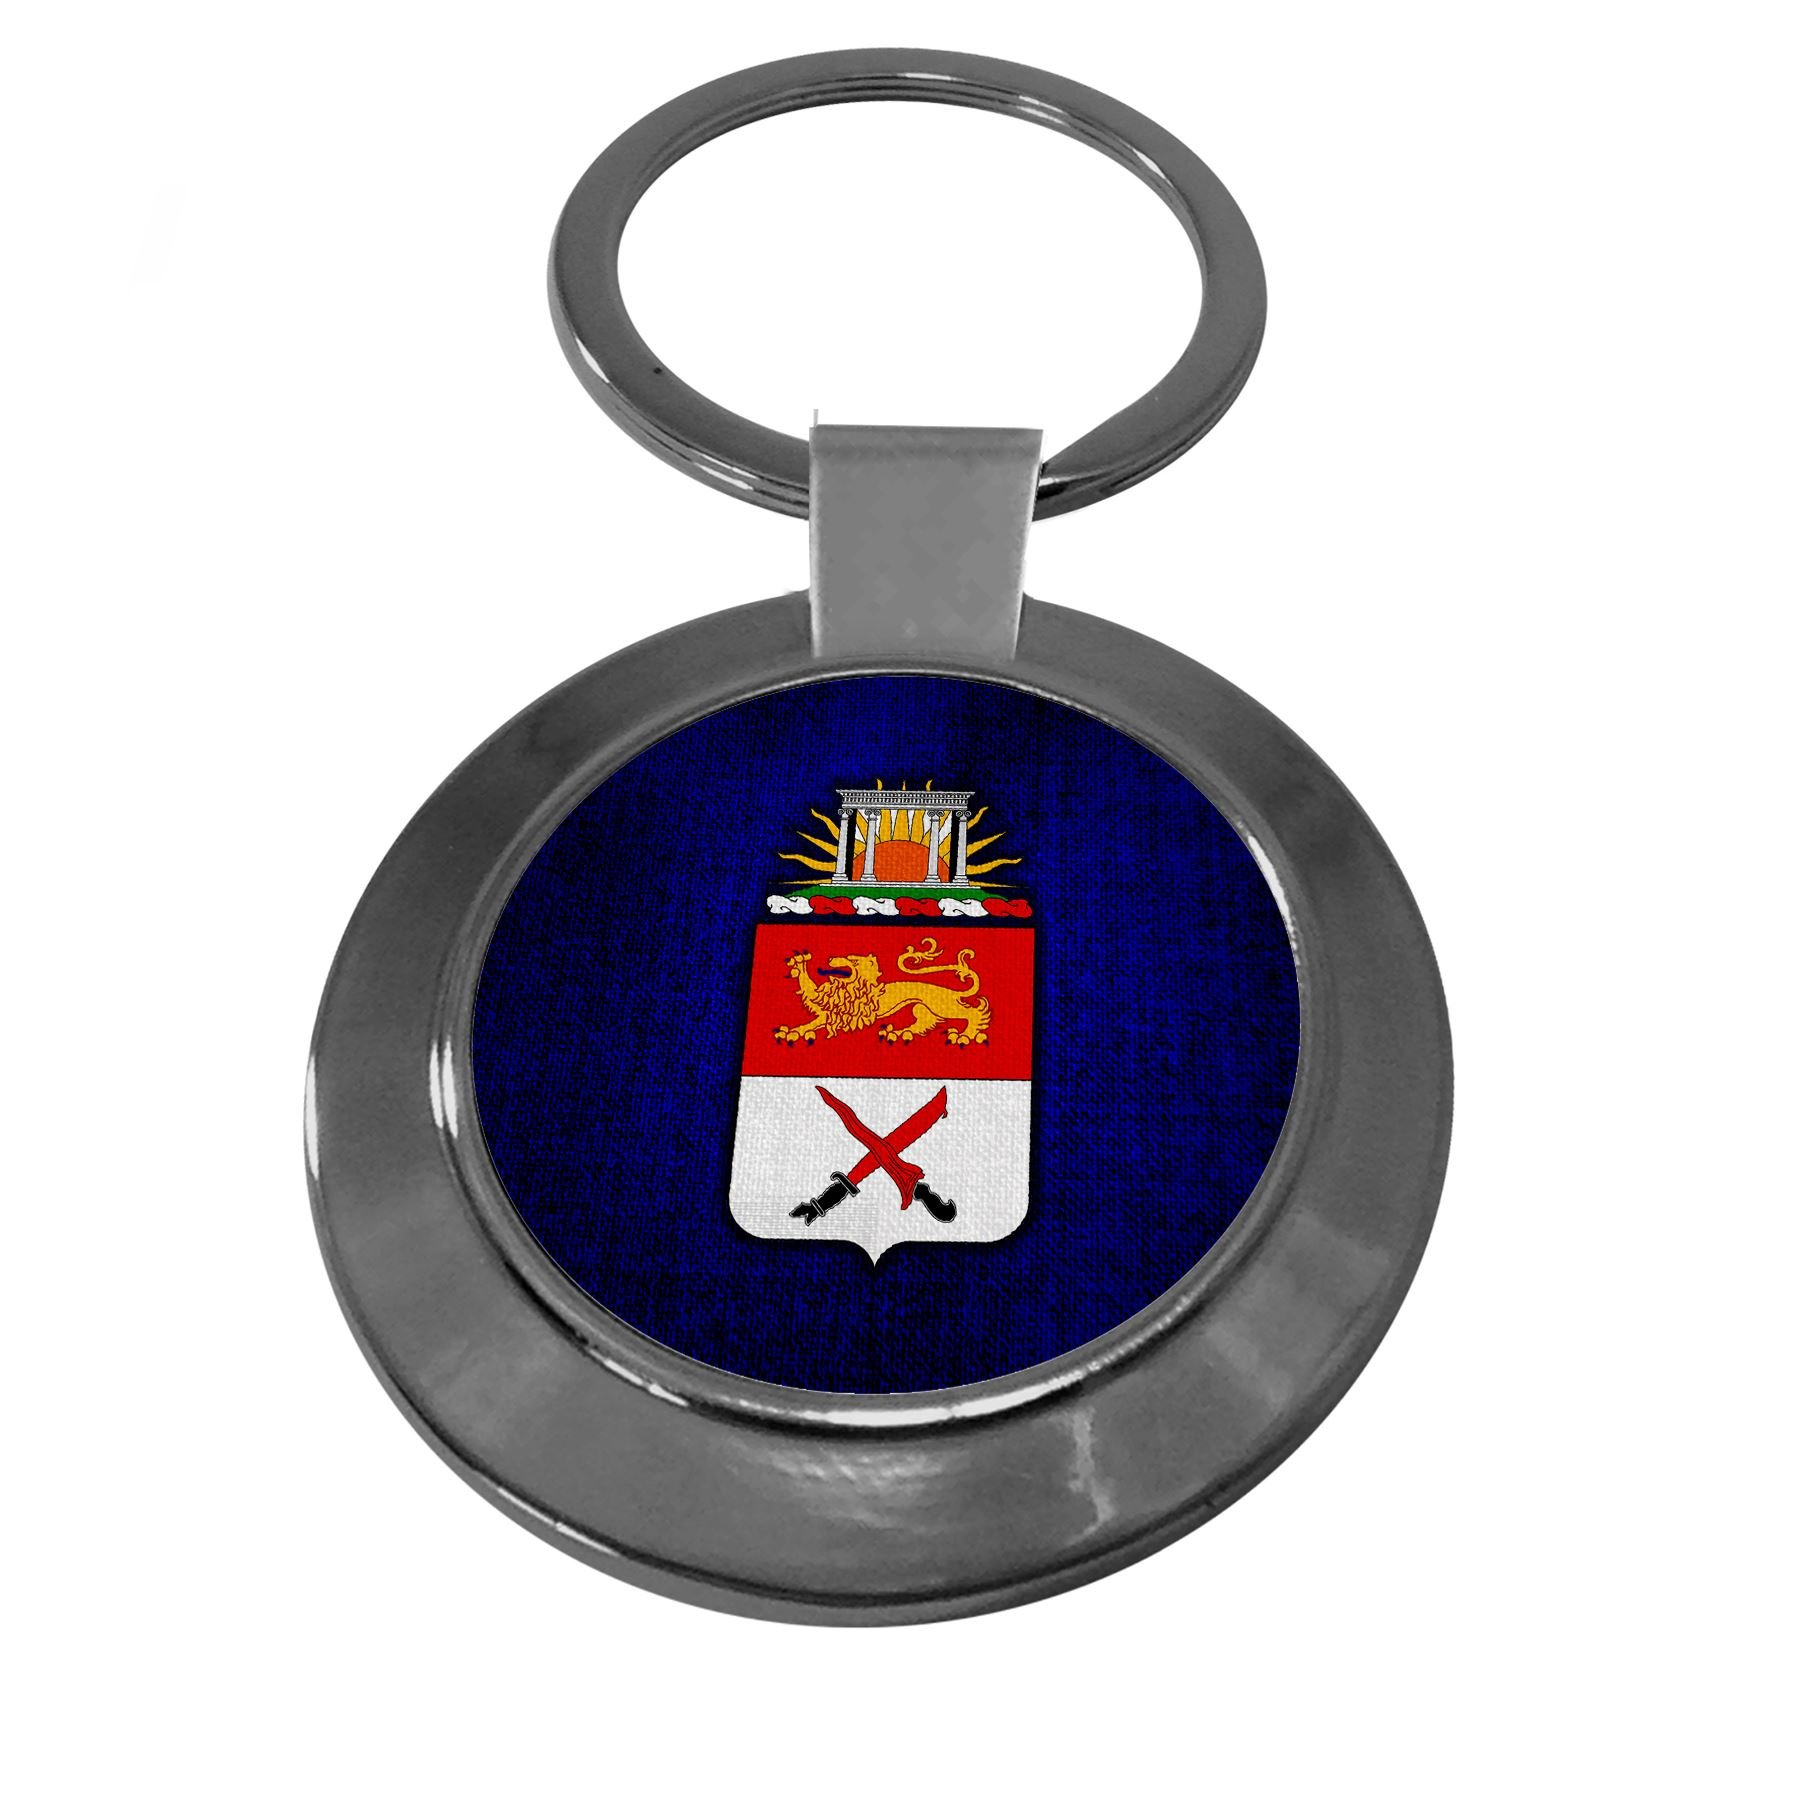 Premium Key Ring with U.S. Army 15th Cavalry Regiment, coat of arms